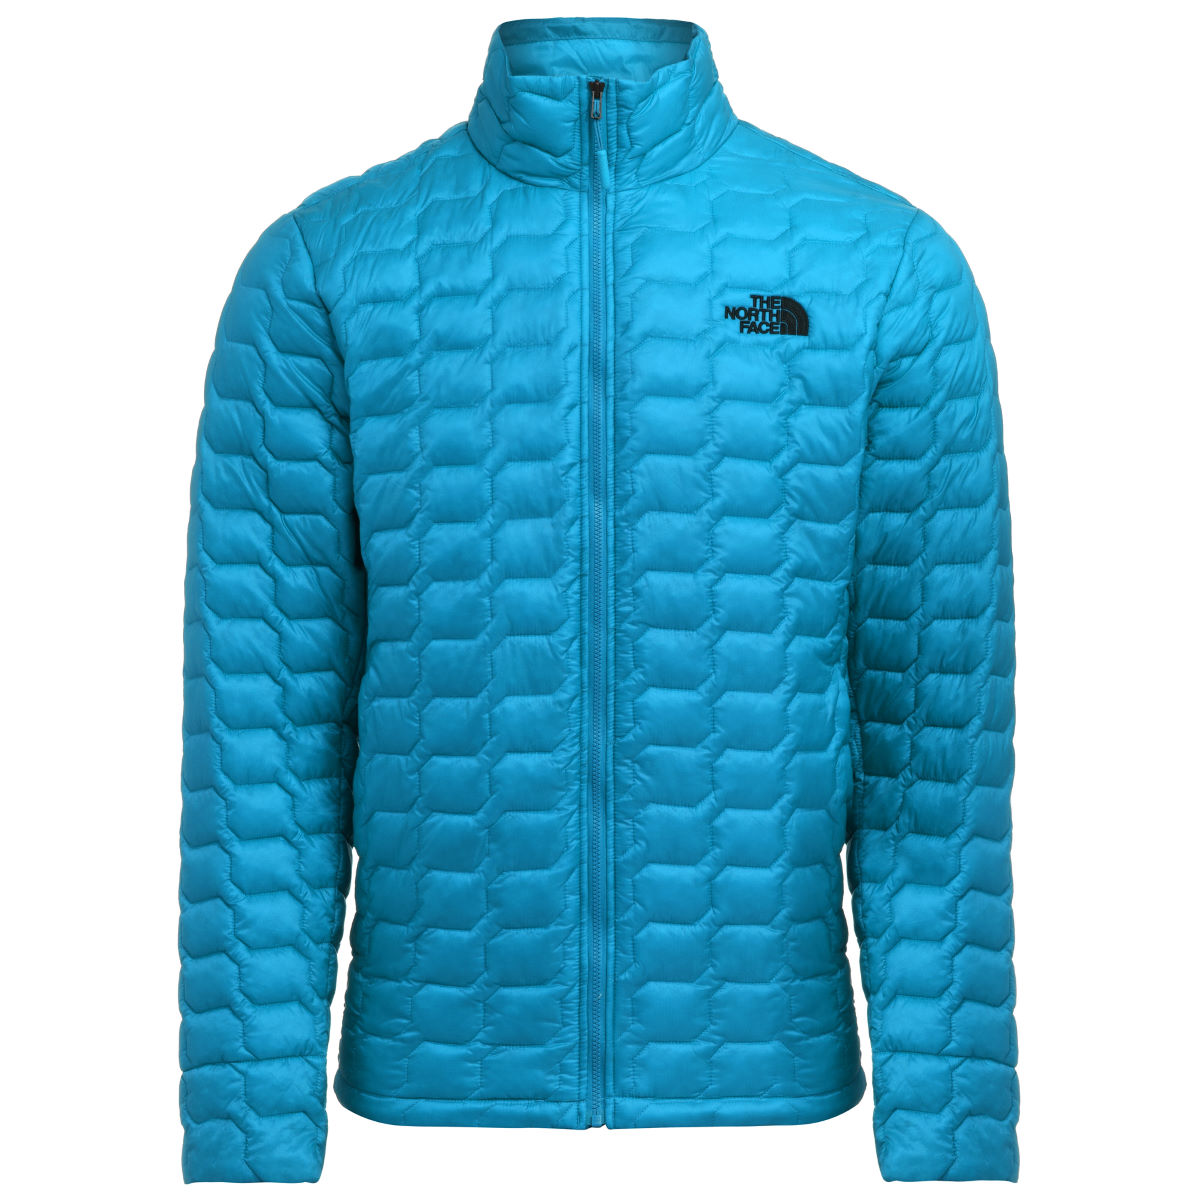 The North Face The North Face ThermoBall™ Jacket   Jackets